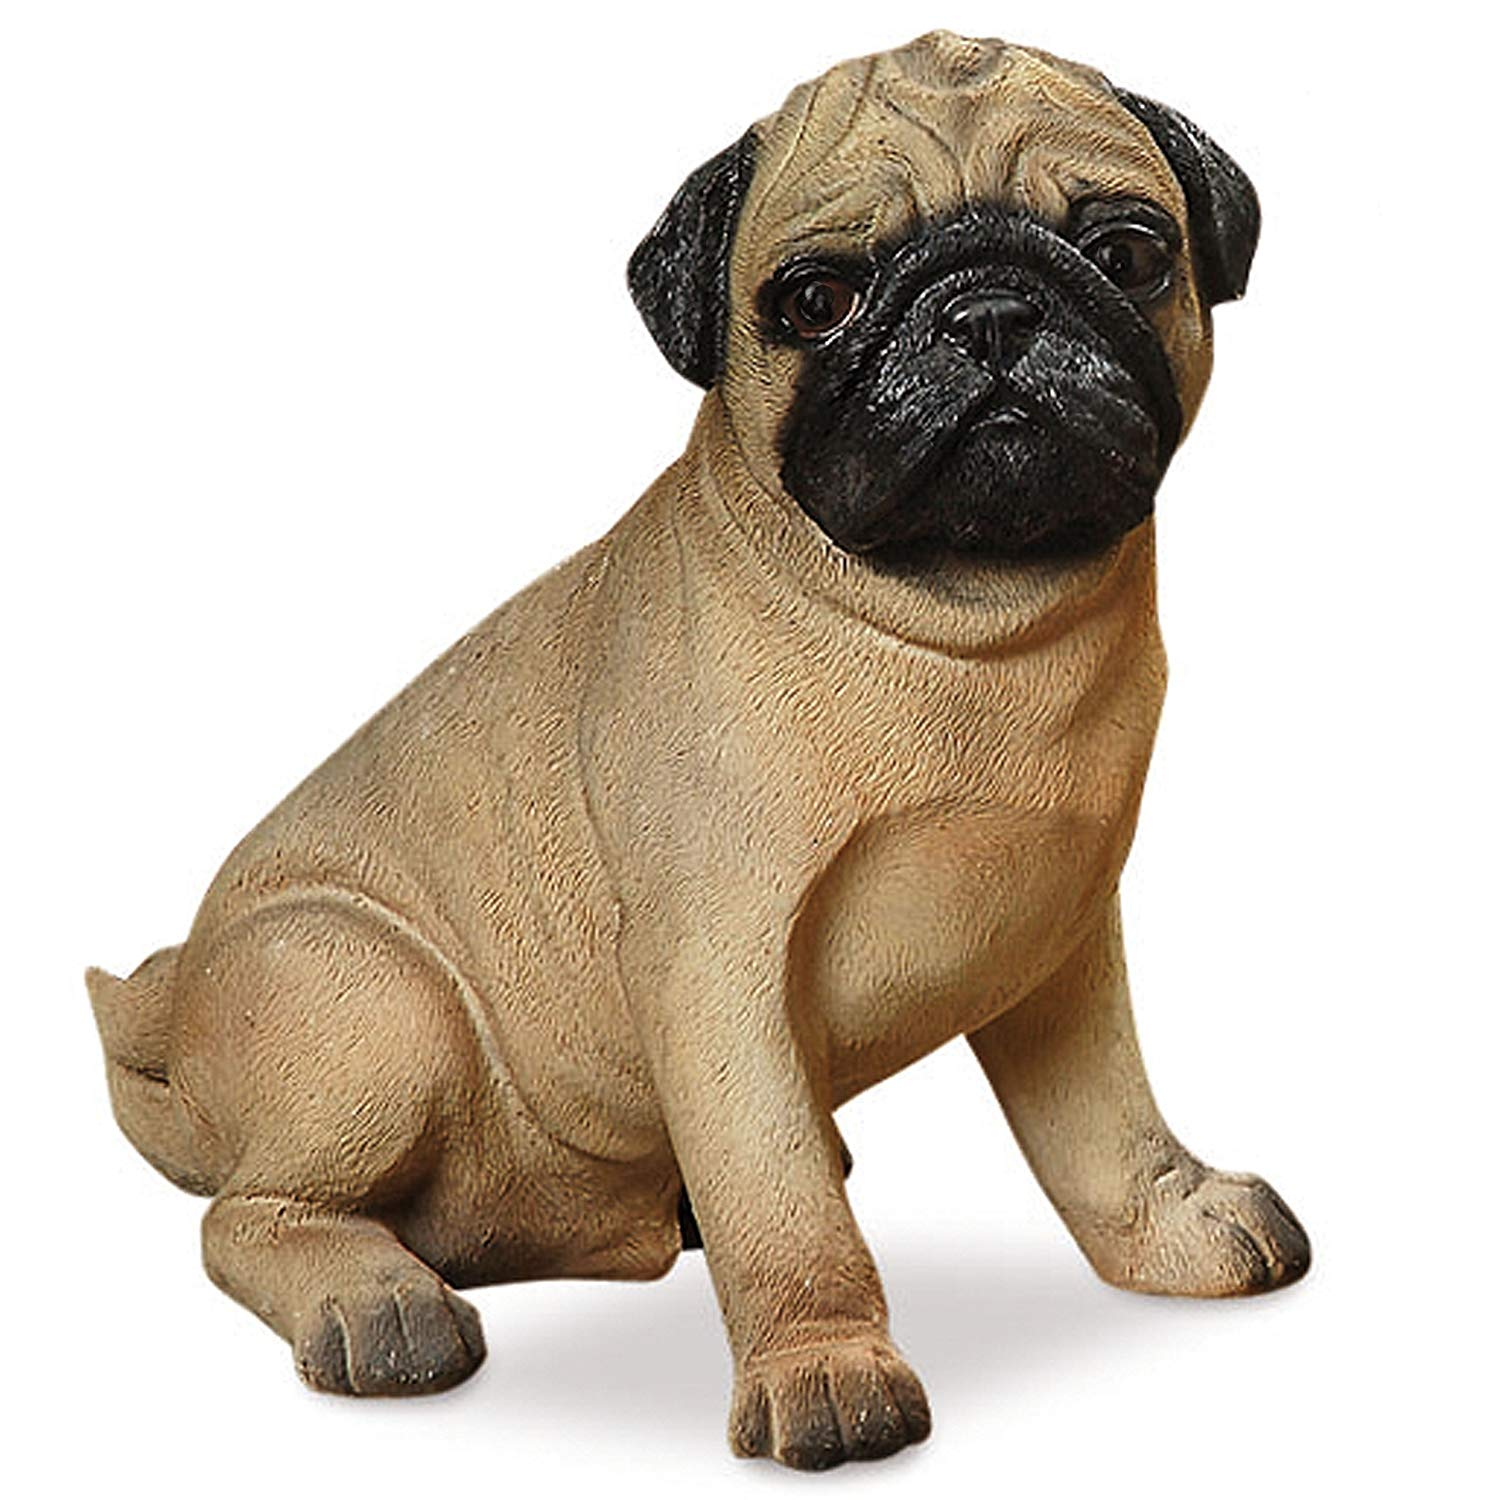 Whole House Worlds Perry Pug, The Seated Puppy Dog Statue, For Indoor and Garden Displays, Ultra-realistic Figurine, 1 Ft Tall, Hand Cast and Painted, Polyresin